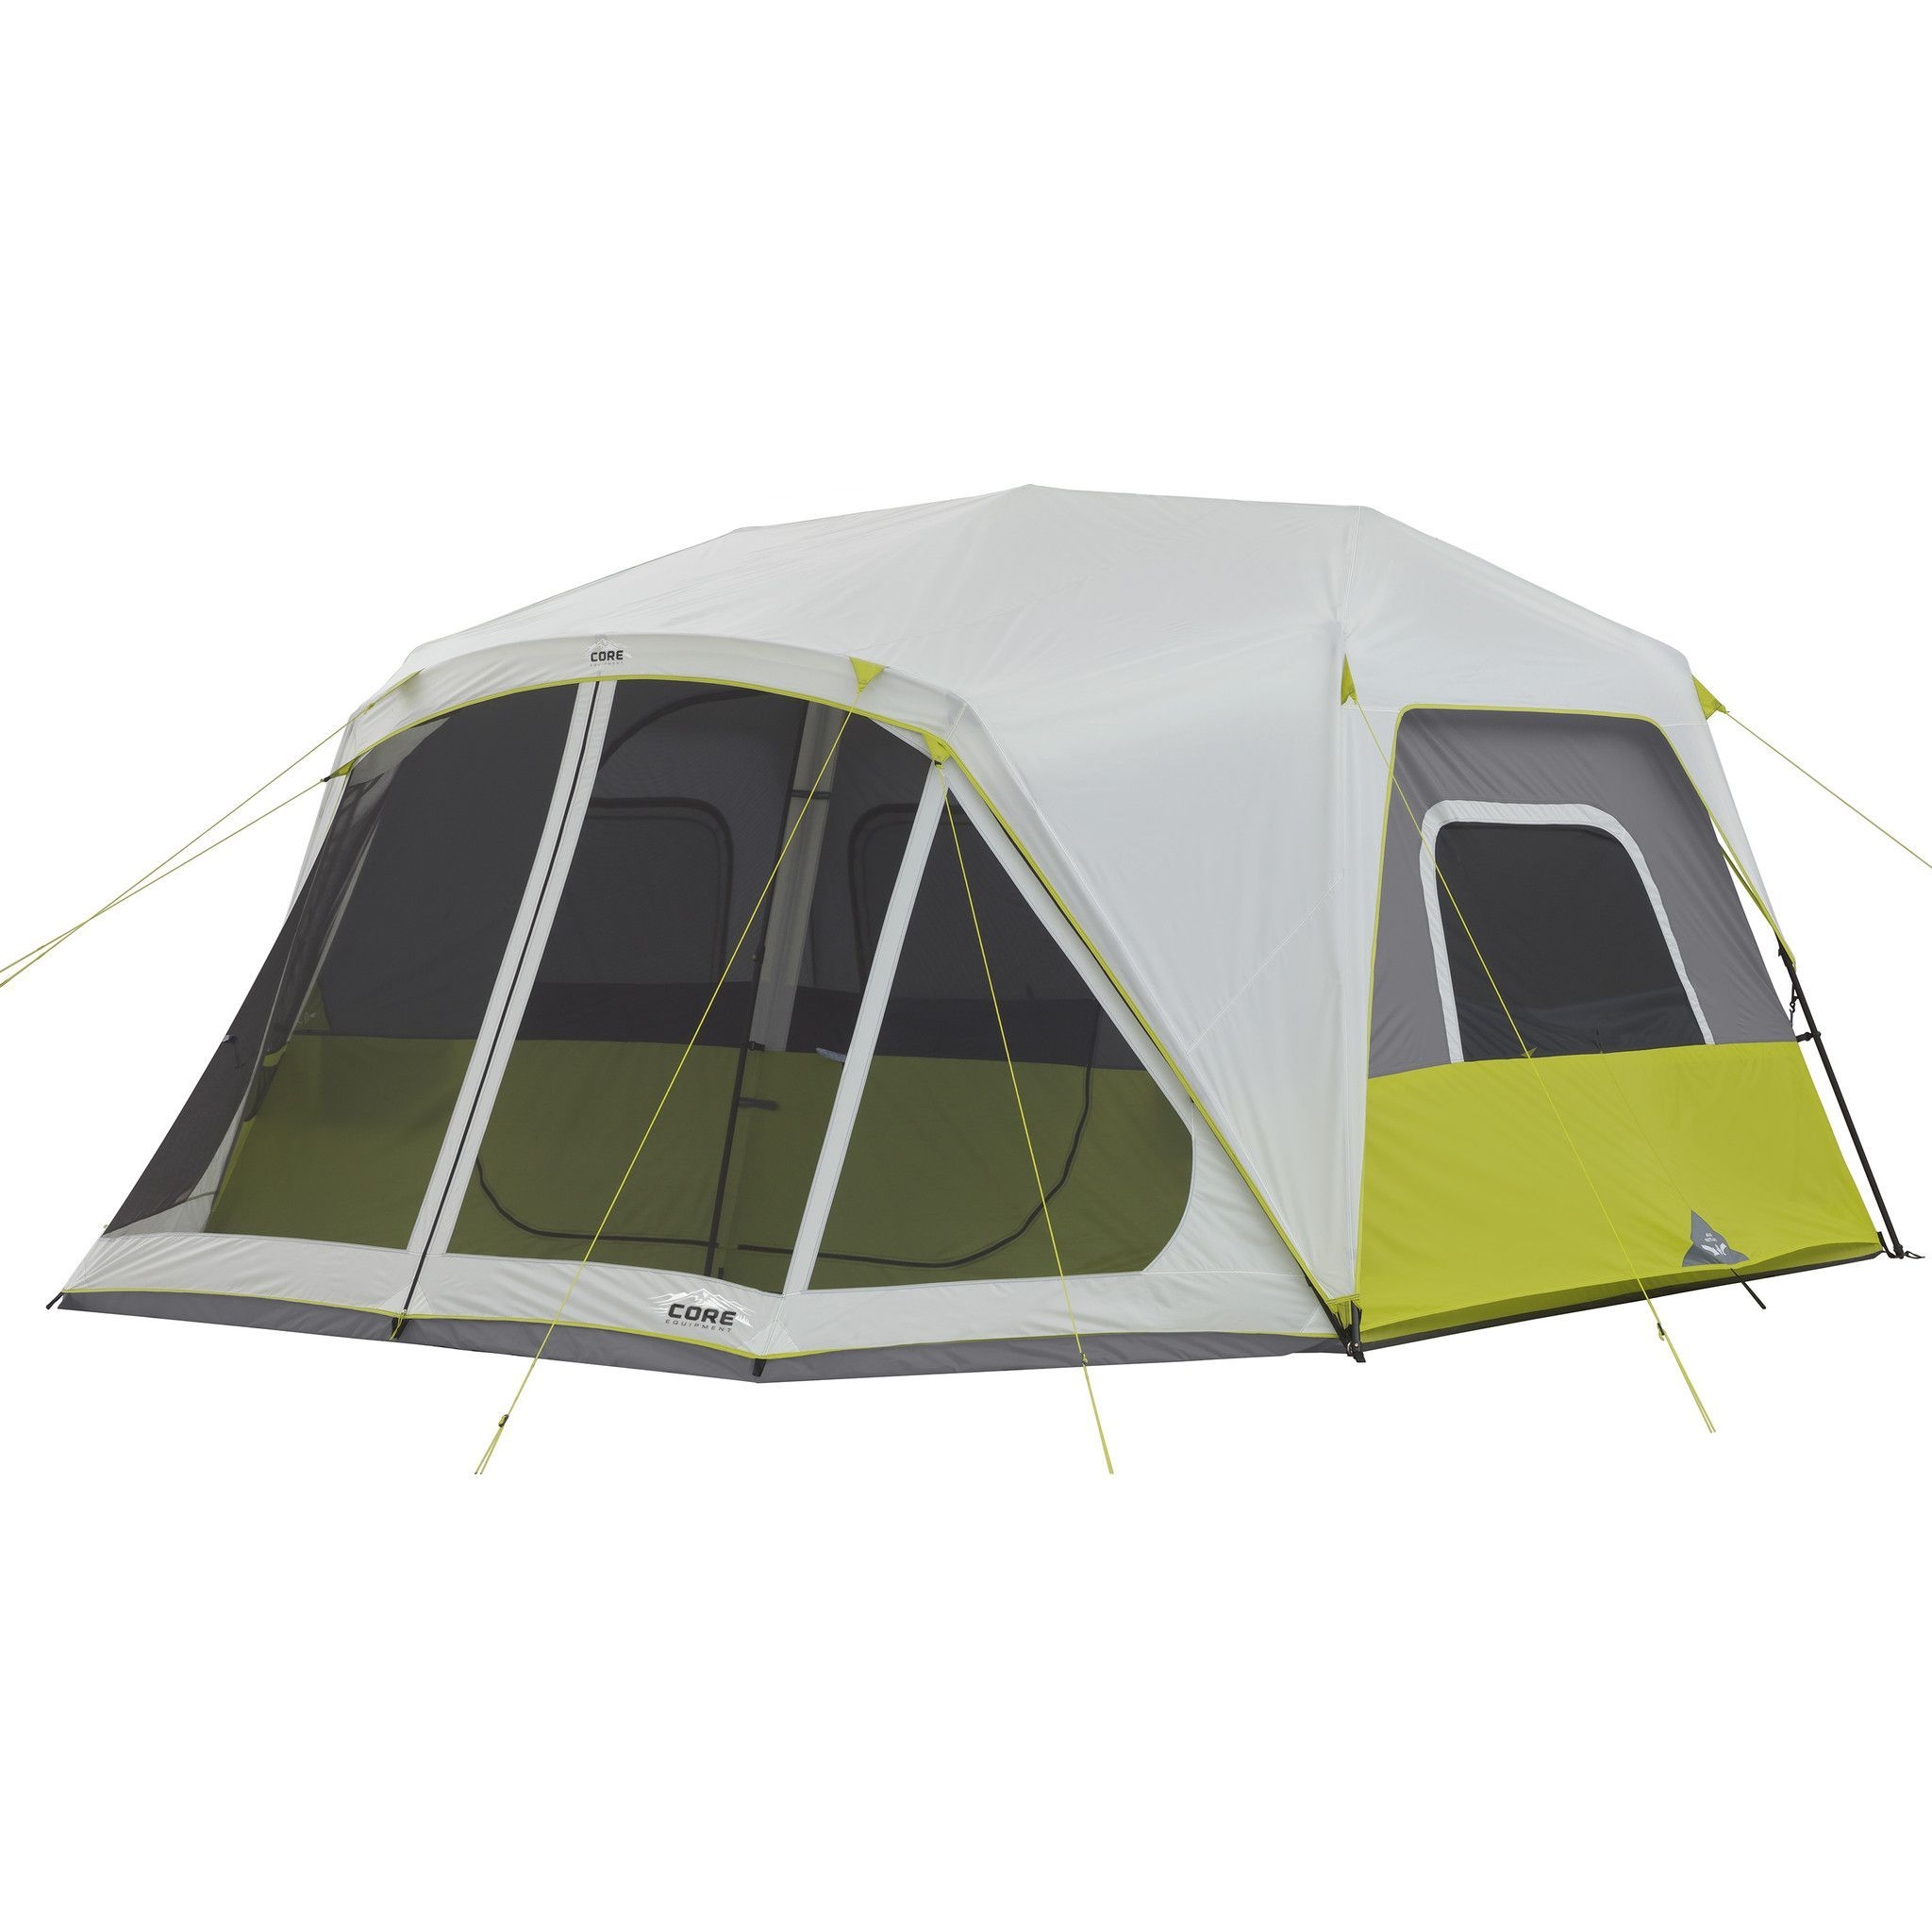 10 Person Instant Cabin Tent With Screen Room 14 X 10 Family Tent Camping Best Tents For Camping Cabin Tent